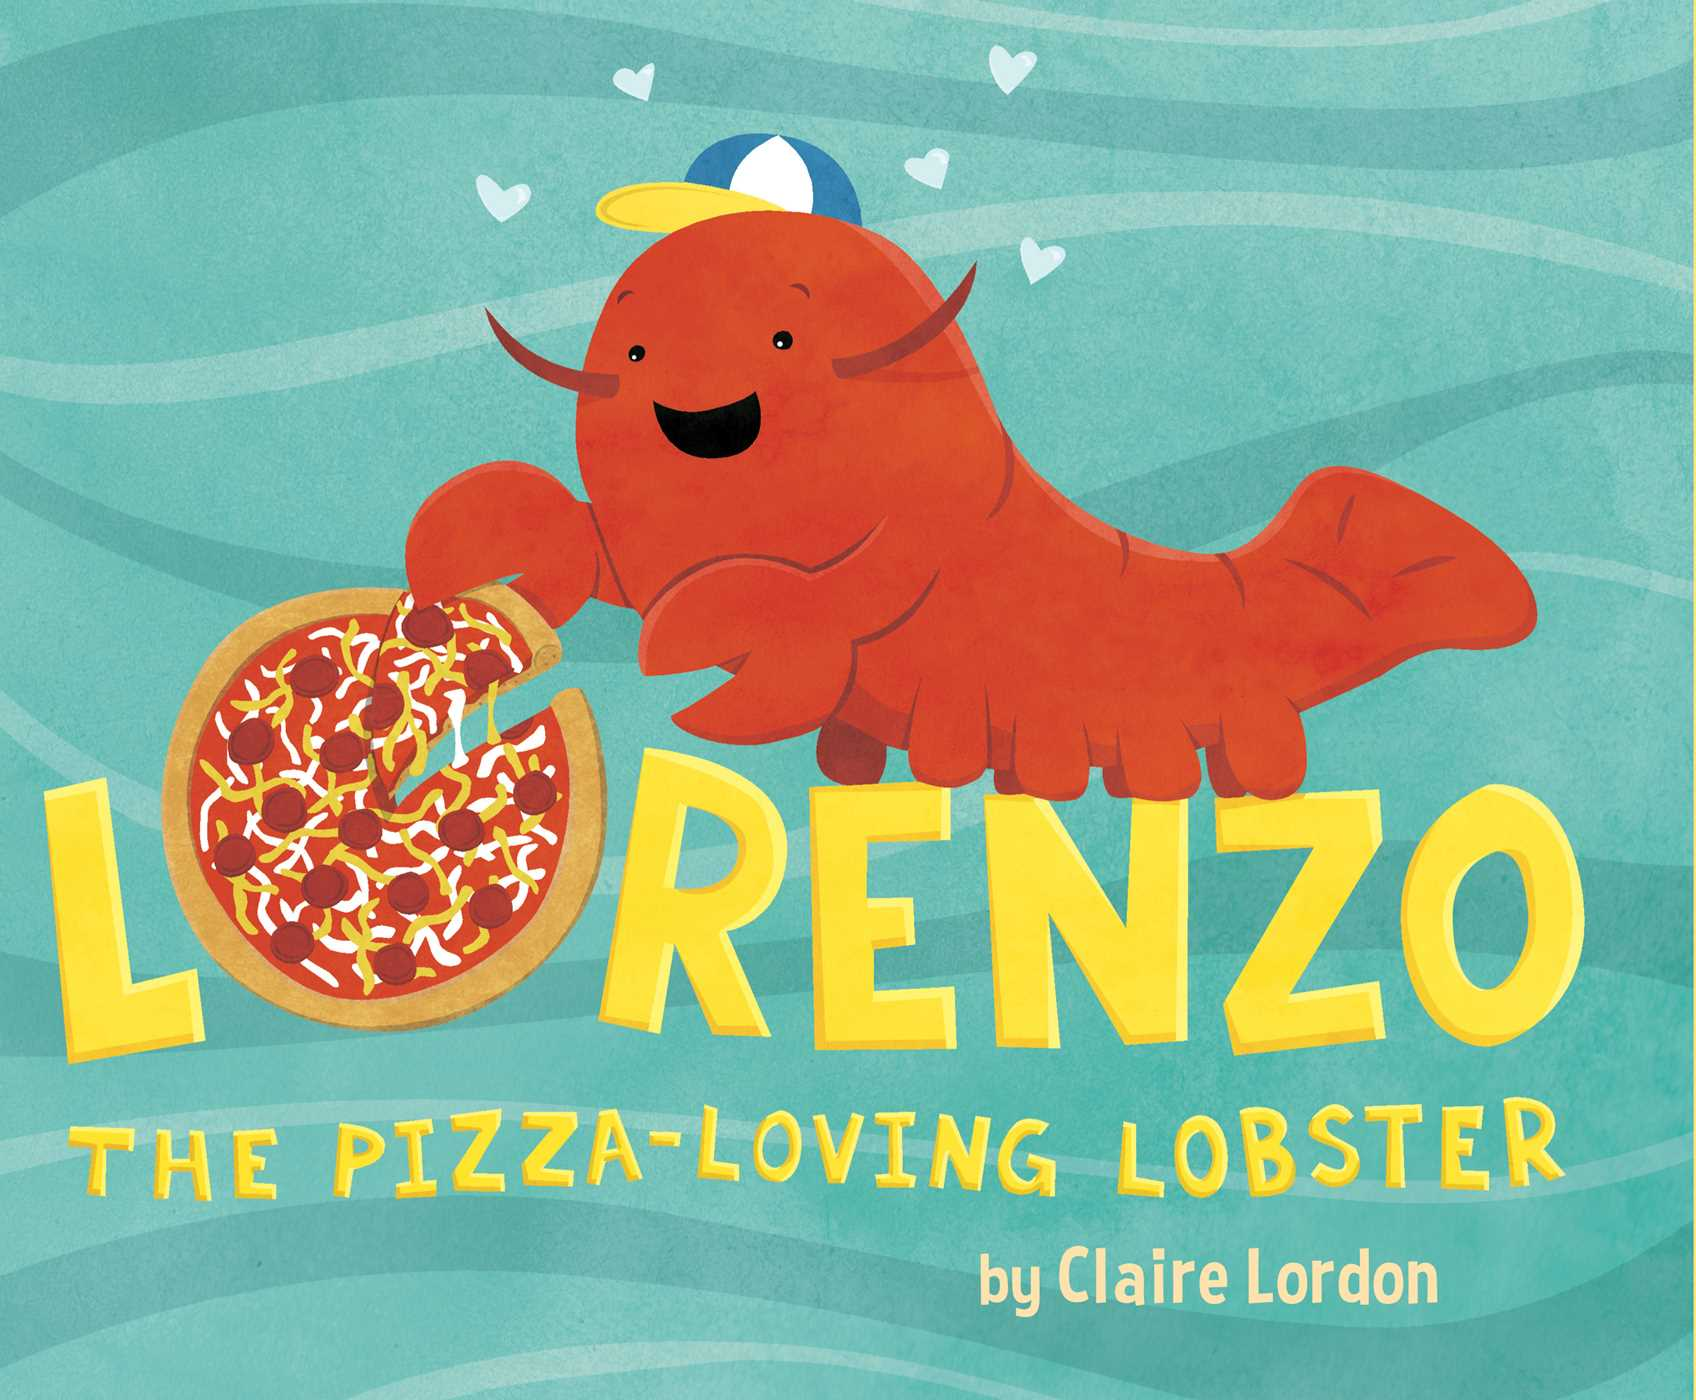 celebrate-picture-books-picture-book-review-lorenzo-the-pizza-loving-lobster-cover